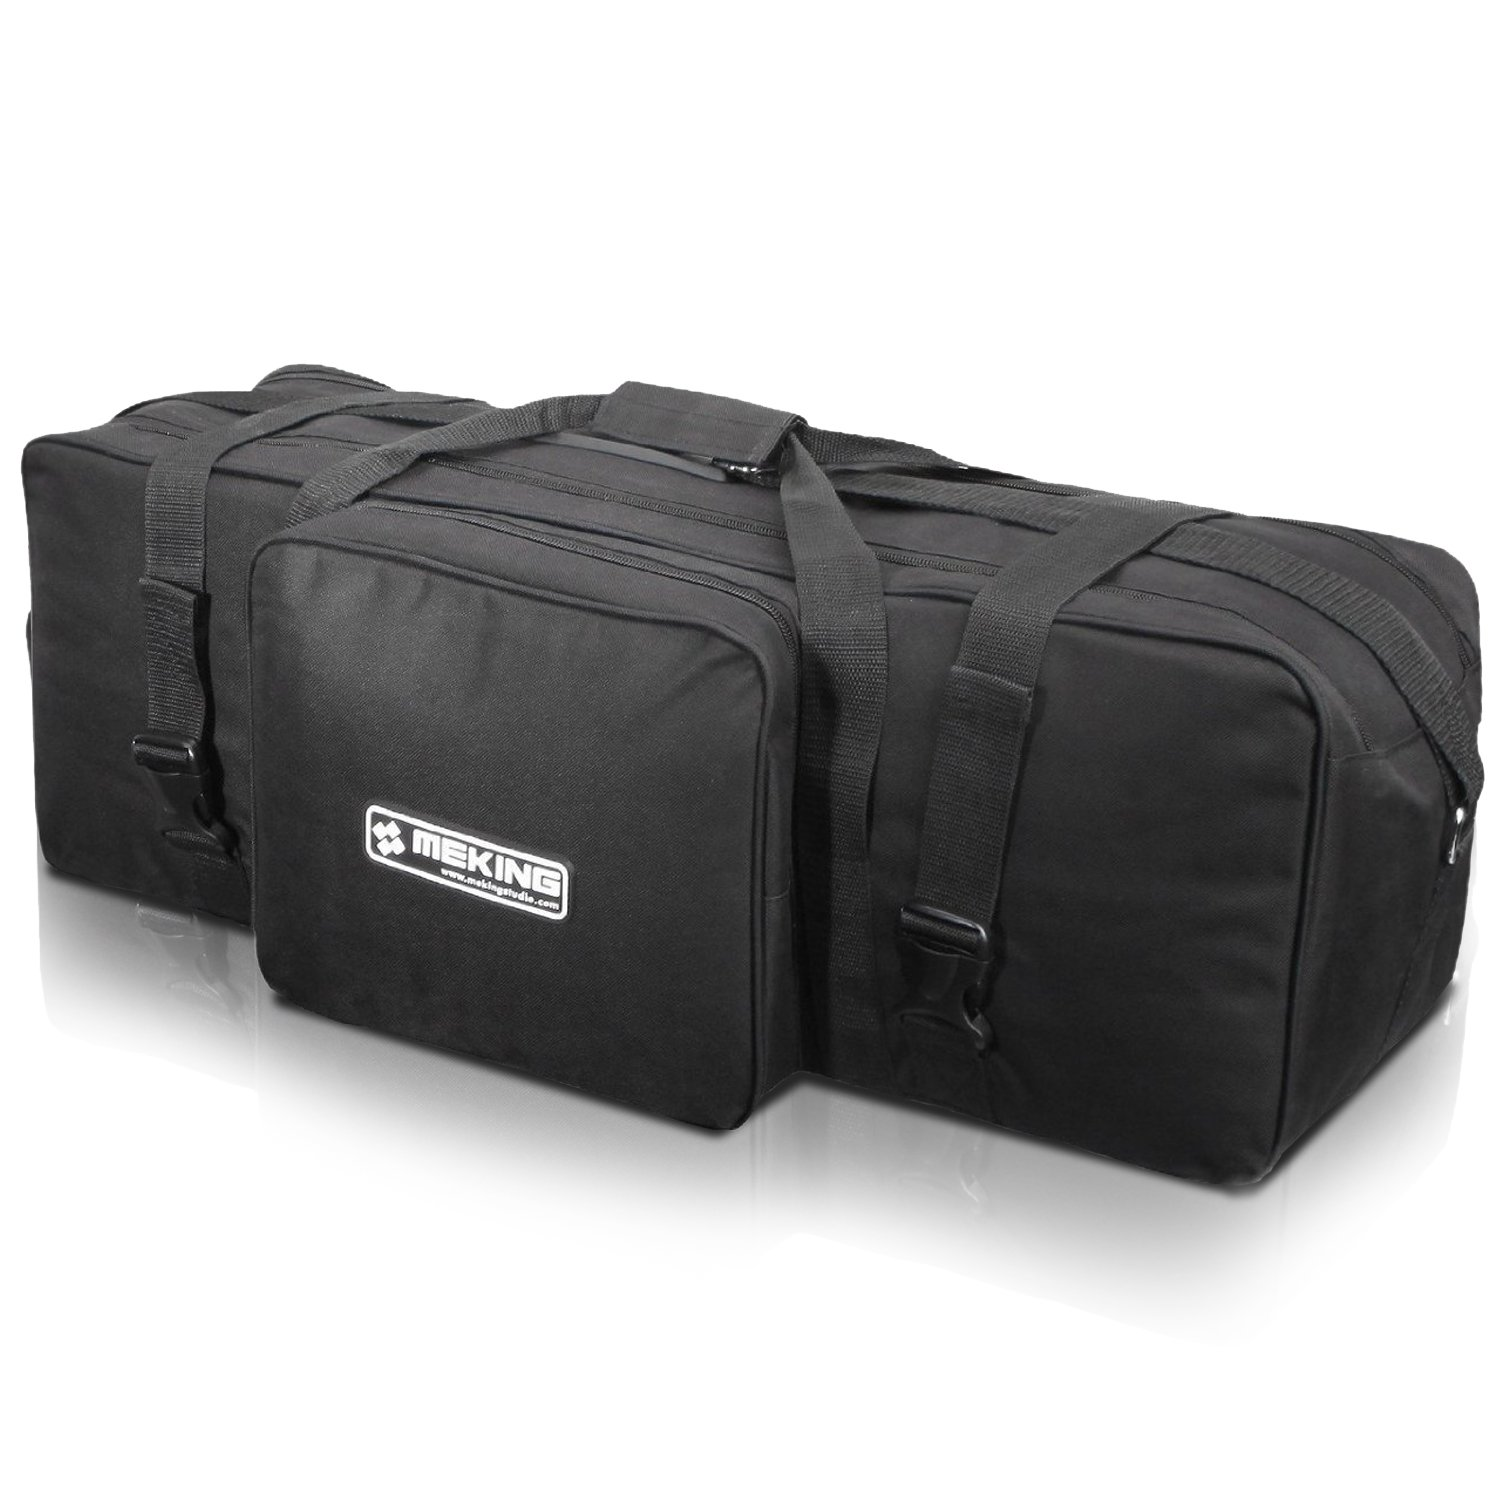 Selens Black Large Portable Photography Equipment Zipper Bag with Pocket for Light Stands, Umbrellas, Tripods and Studio Accessories by Selens